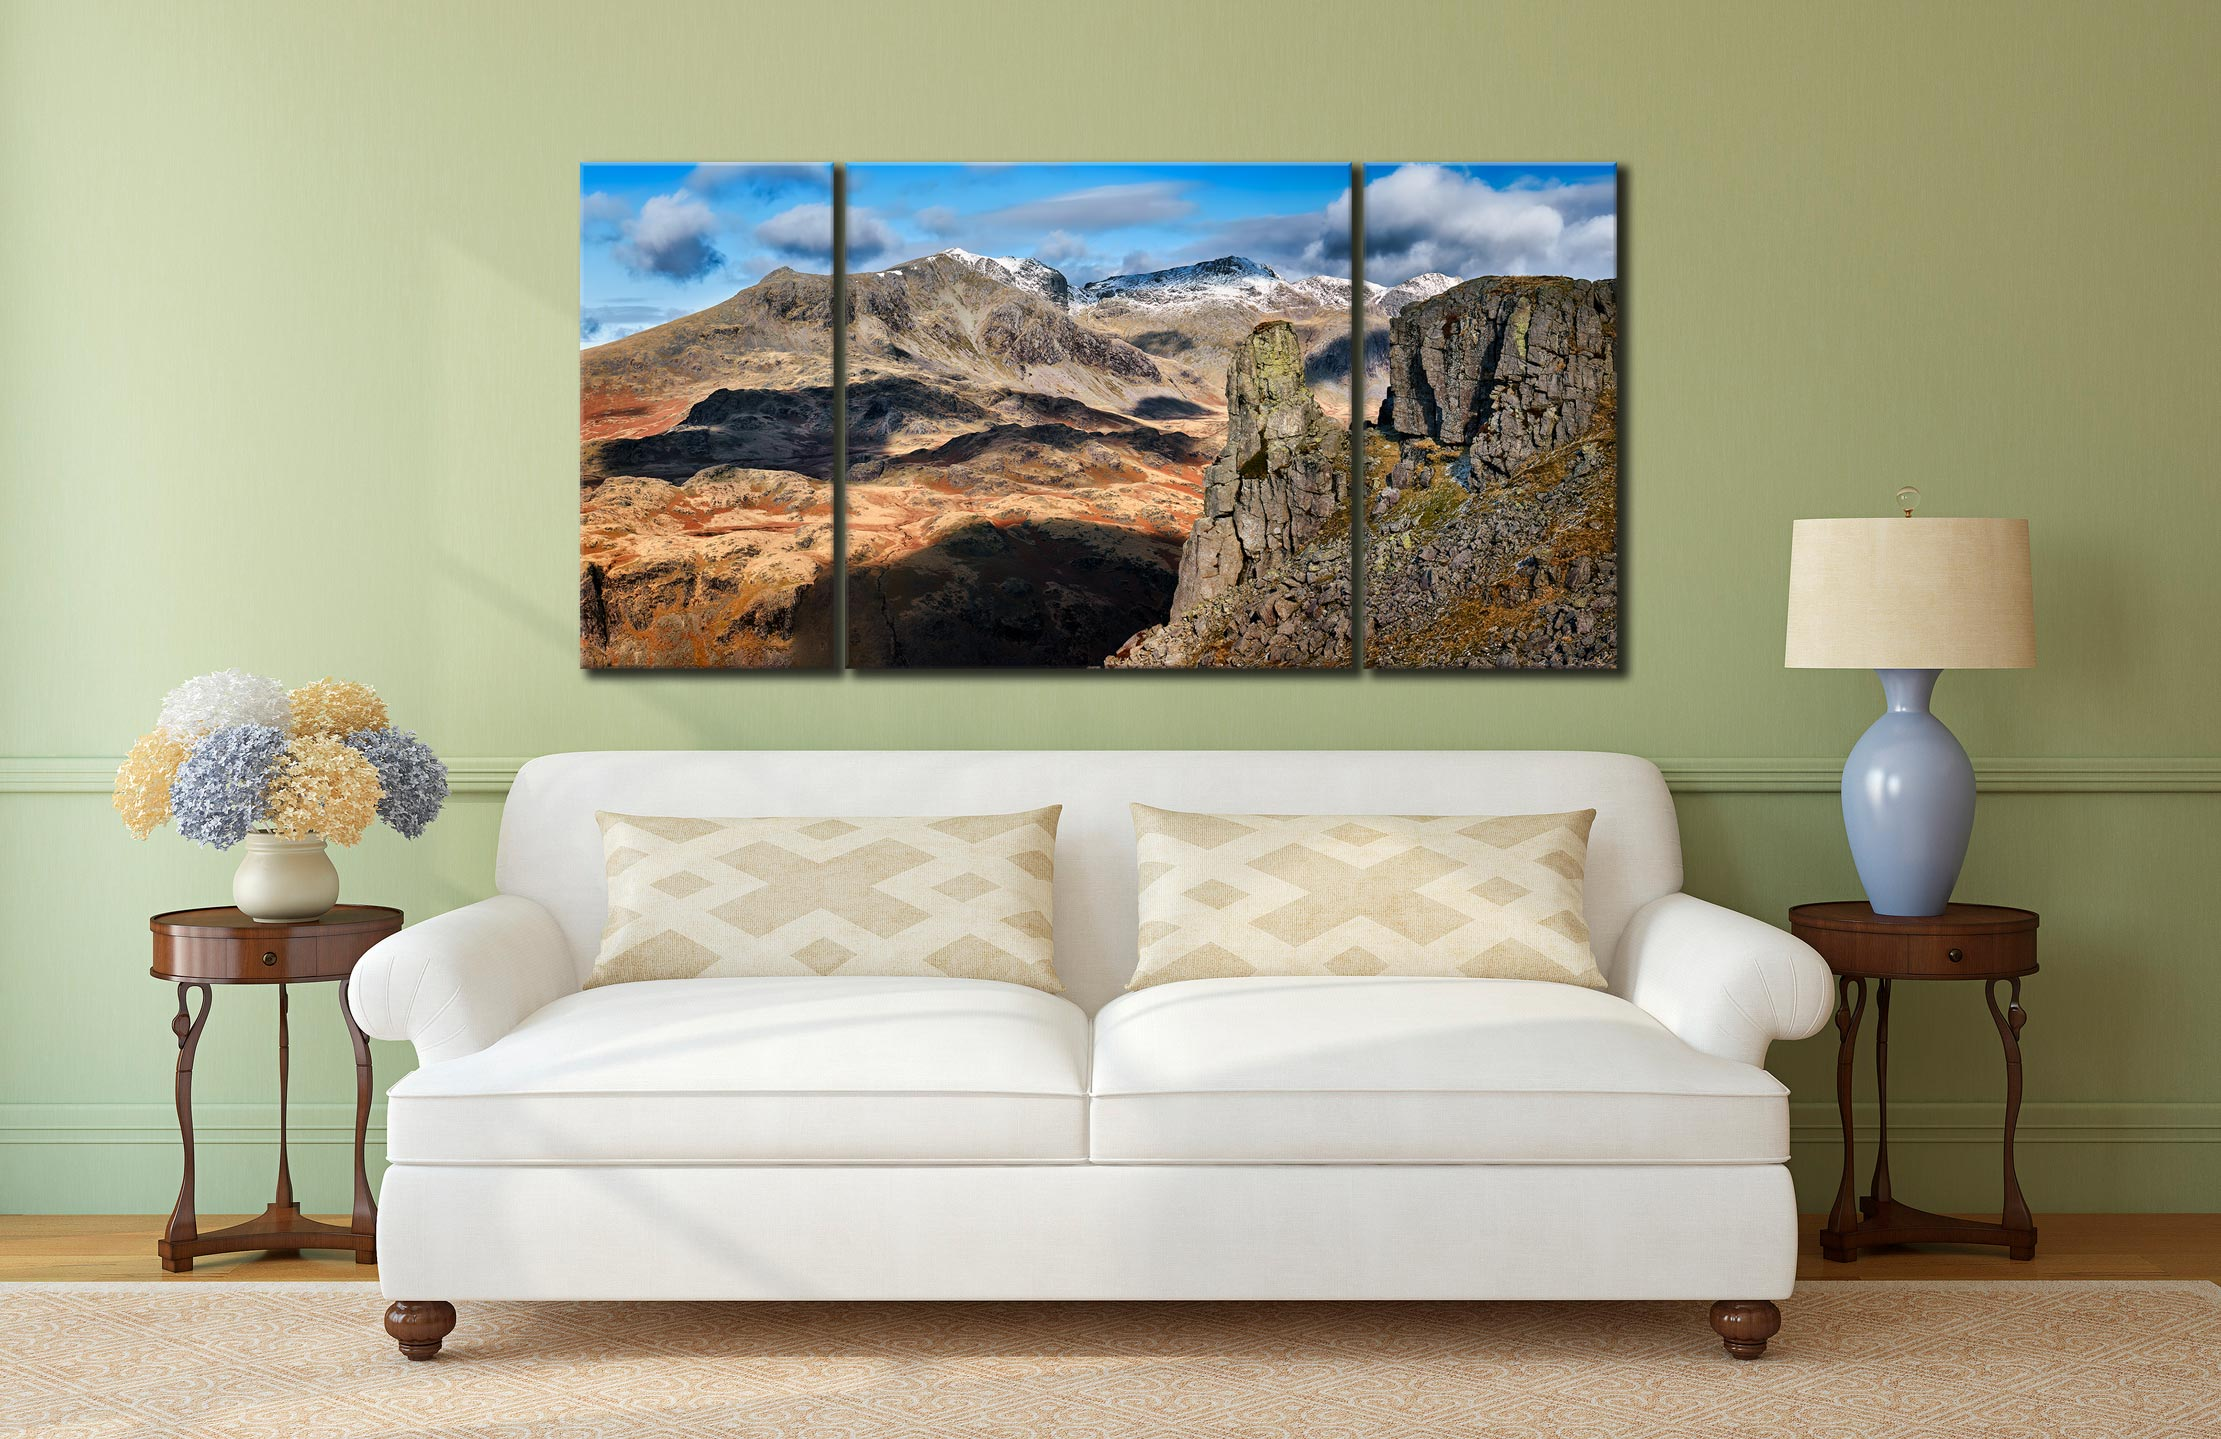 Eskdale Needle and Scafell Mountains - 3 Panel Wide Centre Canvas on Wall